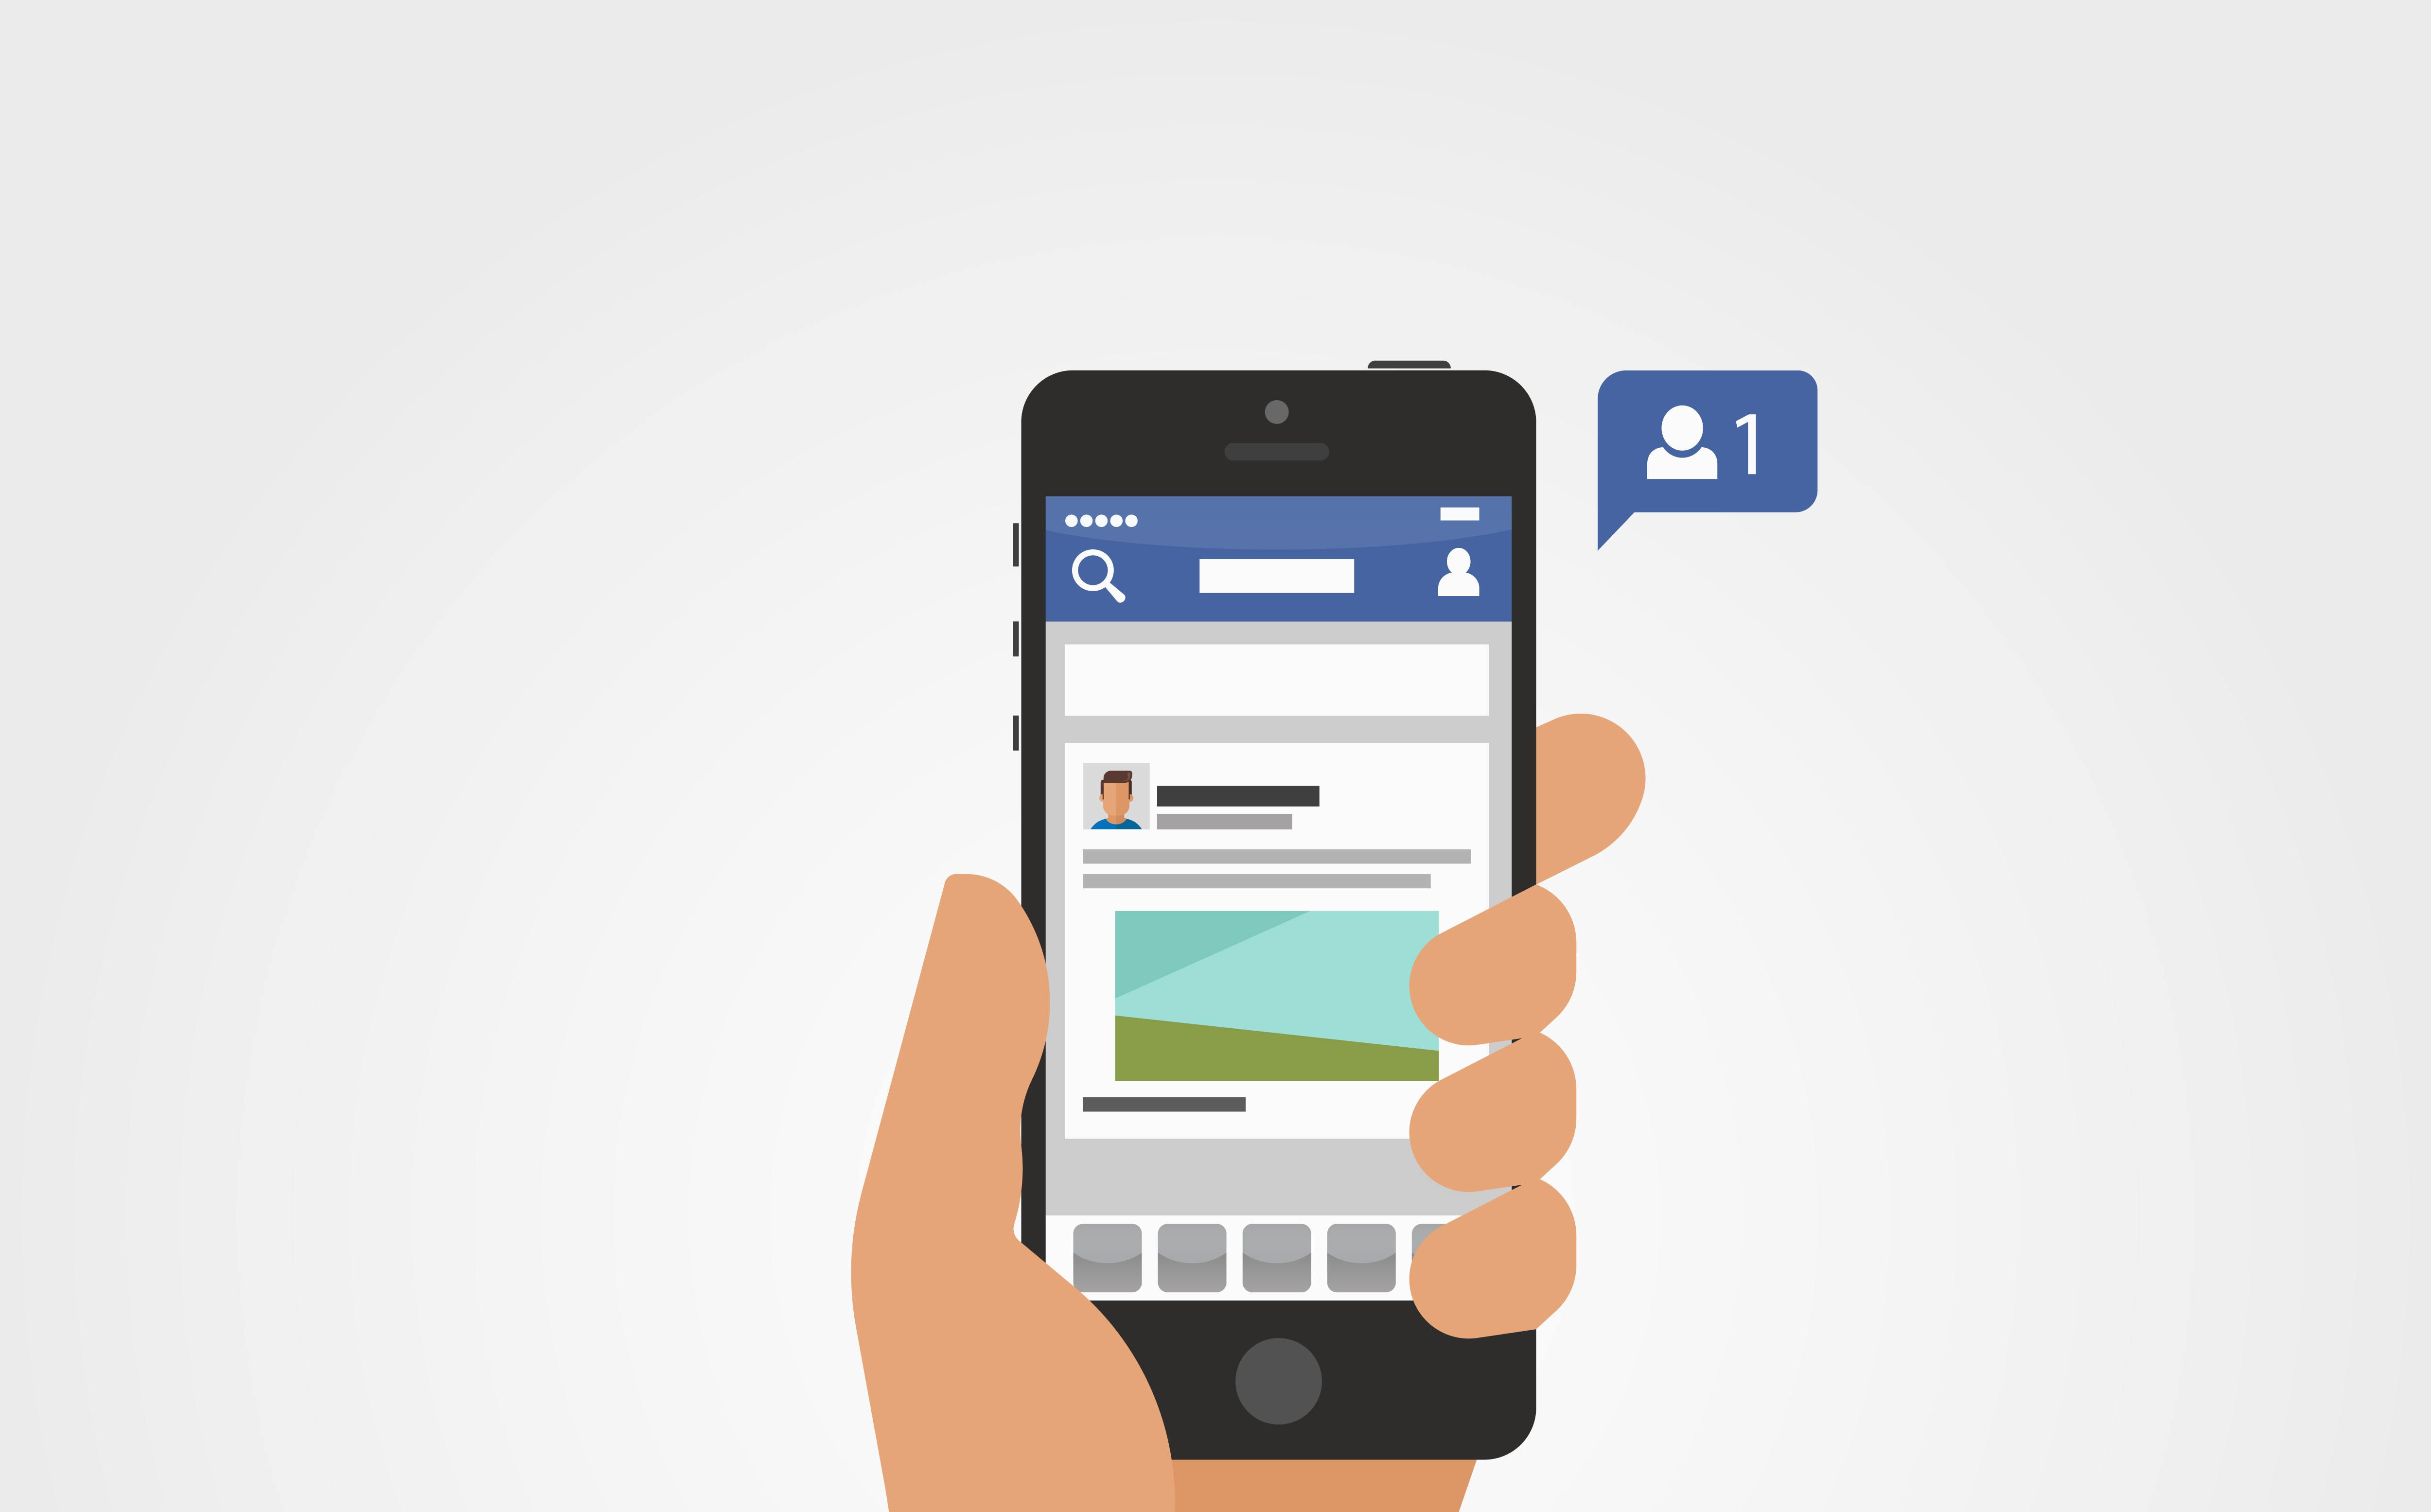 Facebook Announces Plans to Shrink Mobile News Feed Ad Space